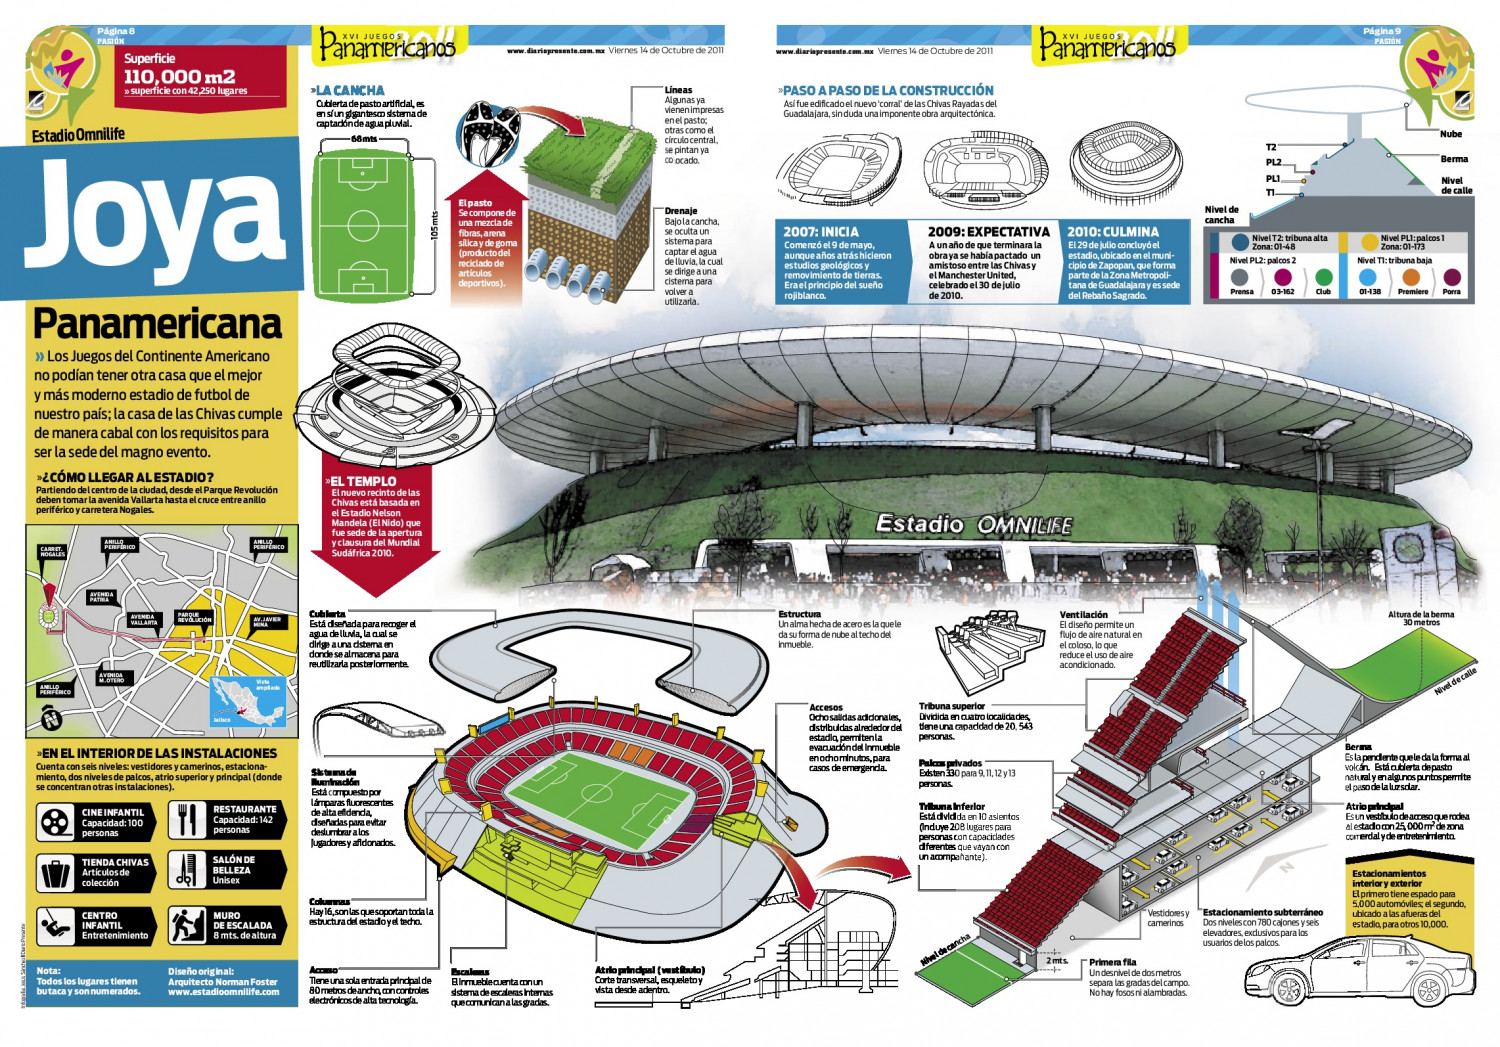 Estadio Chivas Infographic